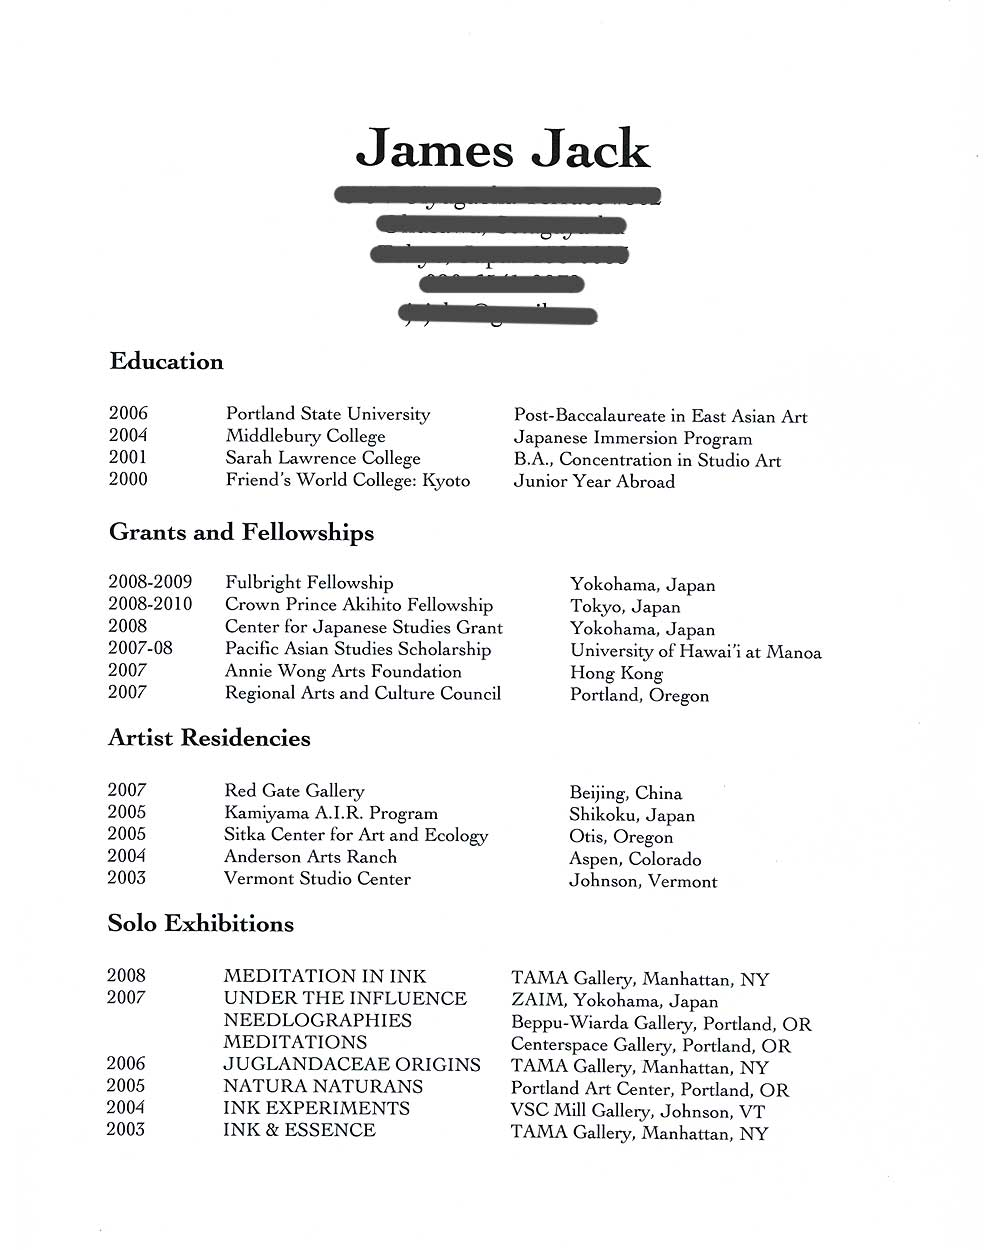 James Jack's Resume, pg 1